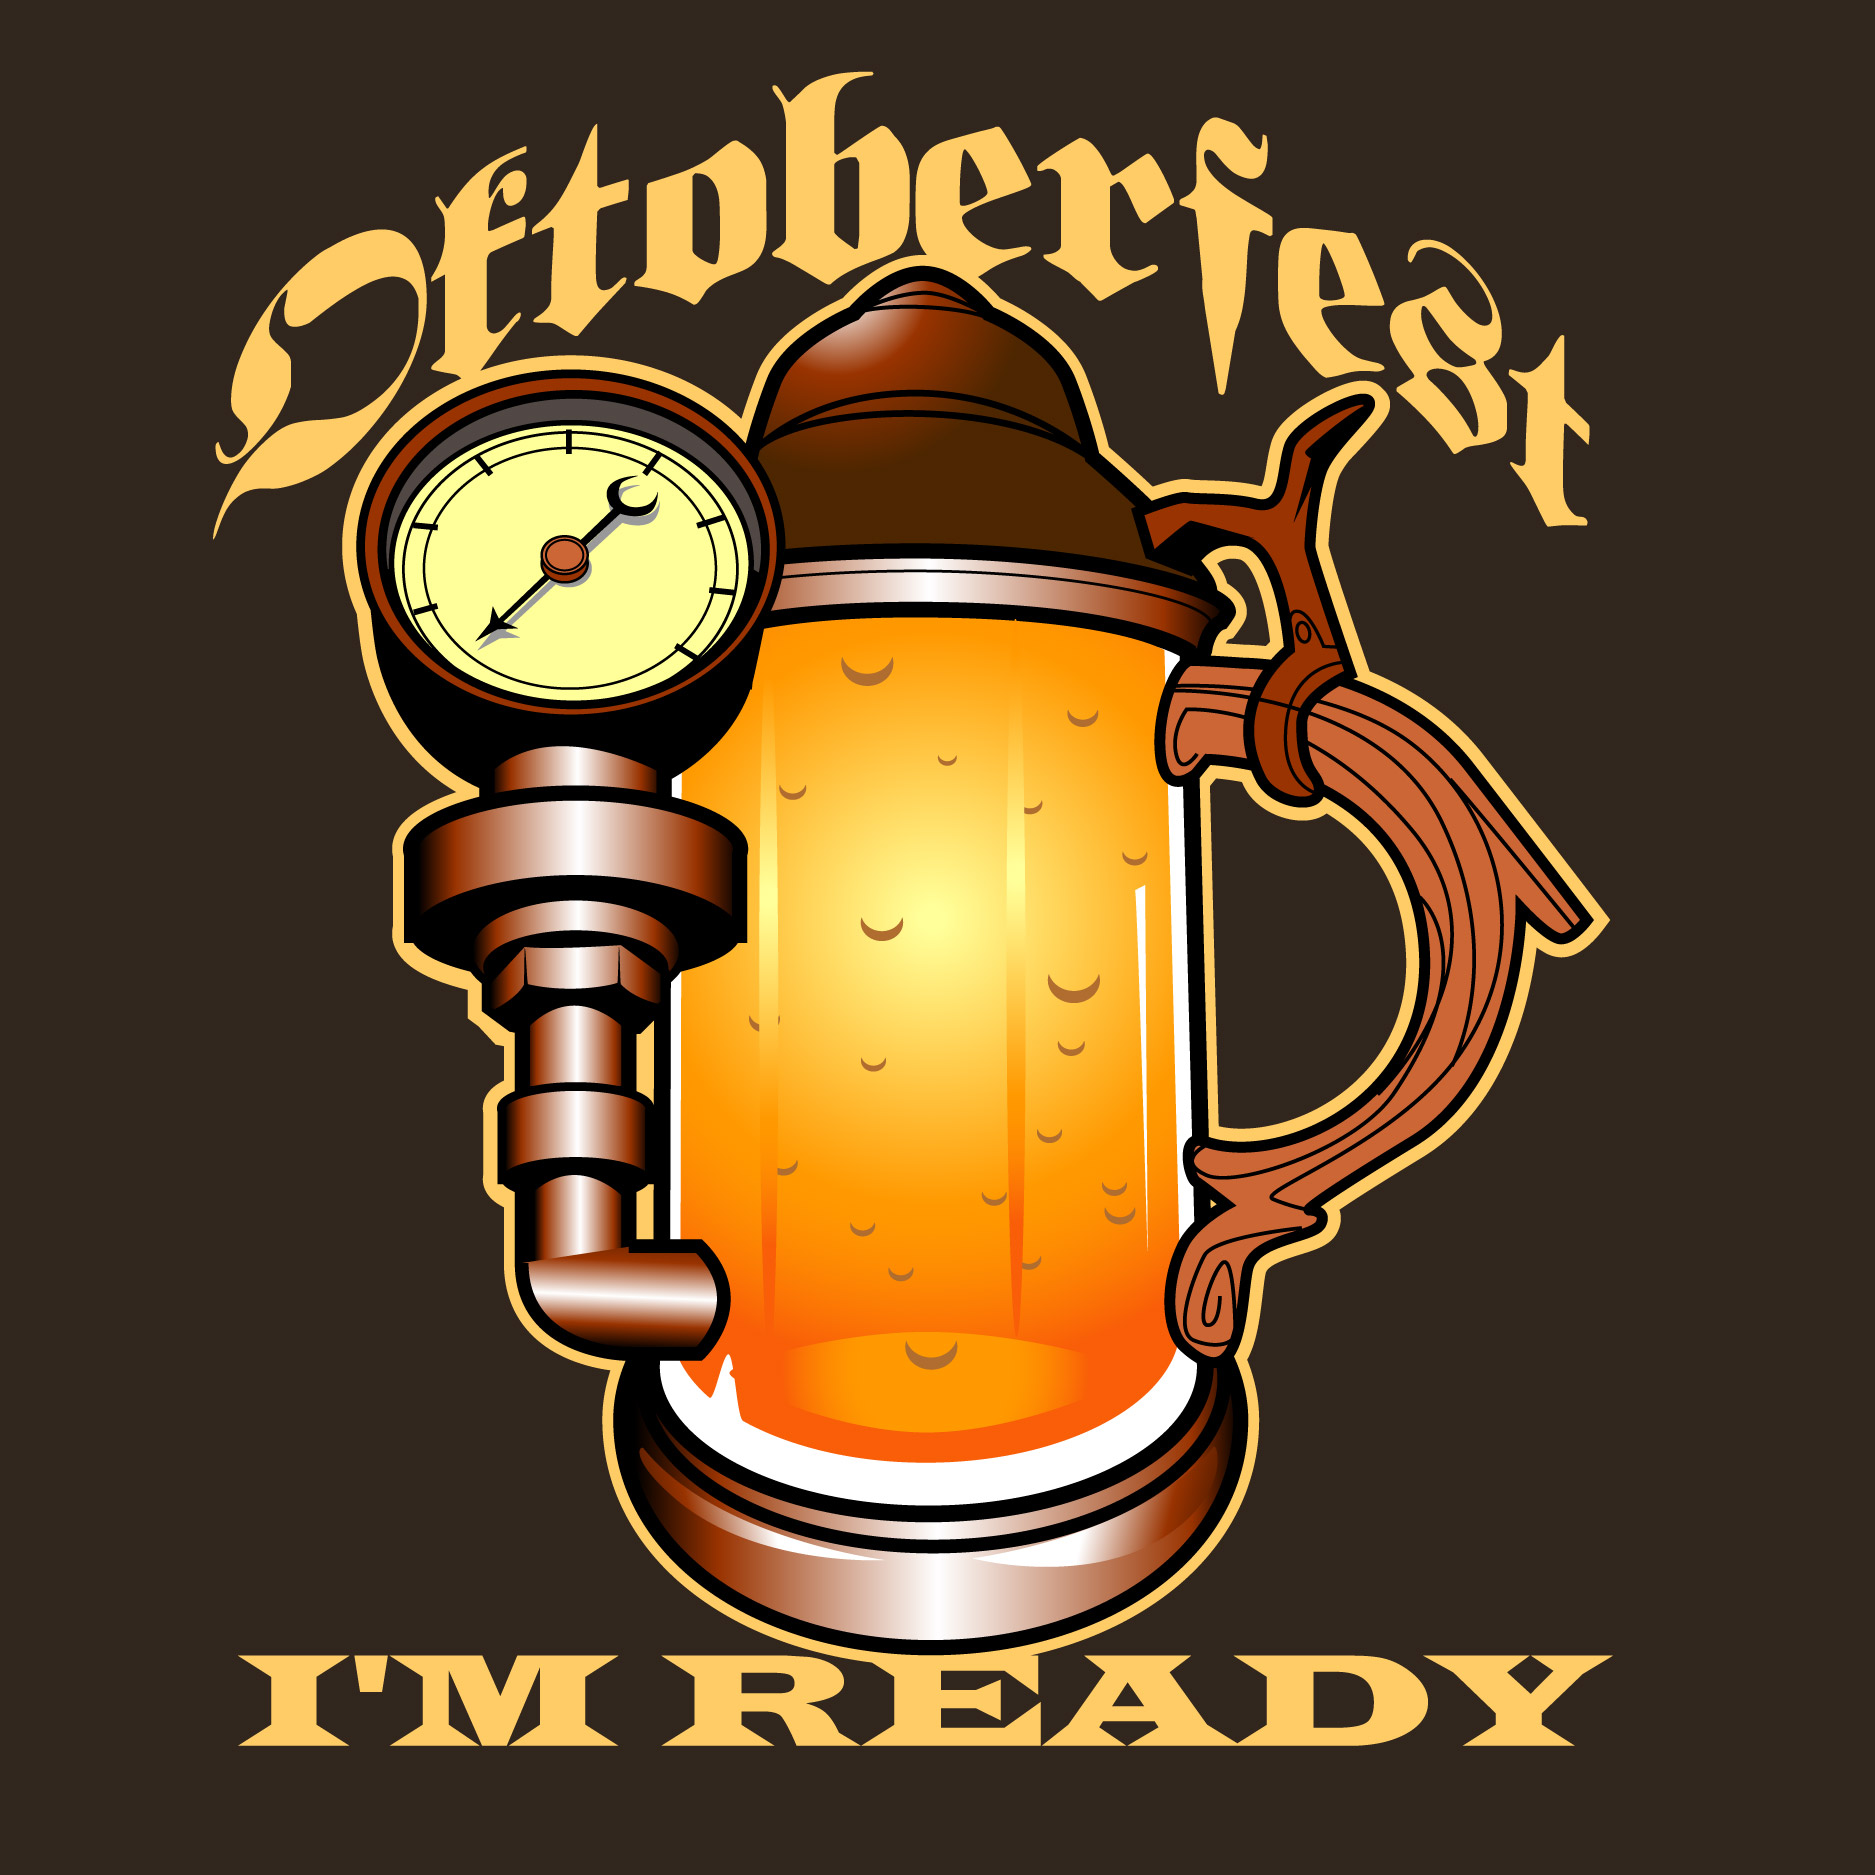 Ready for Octoberfest